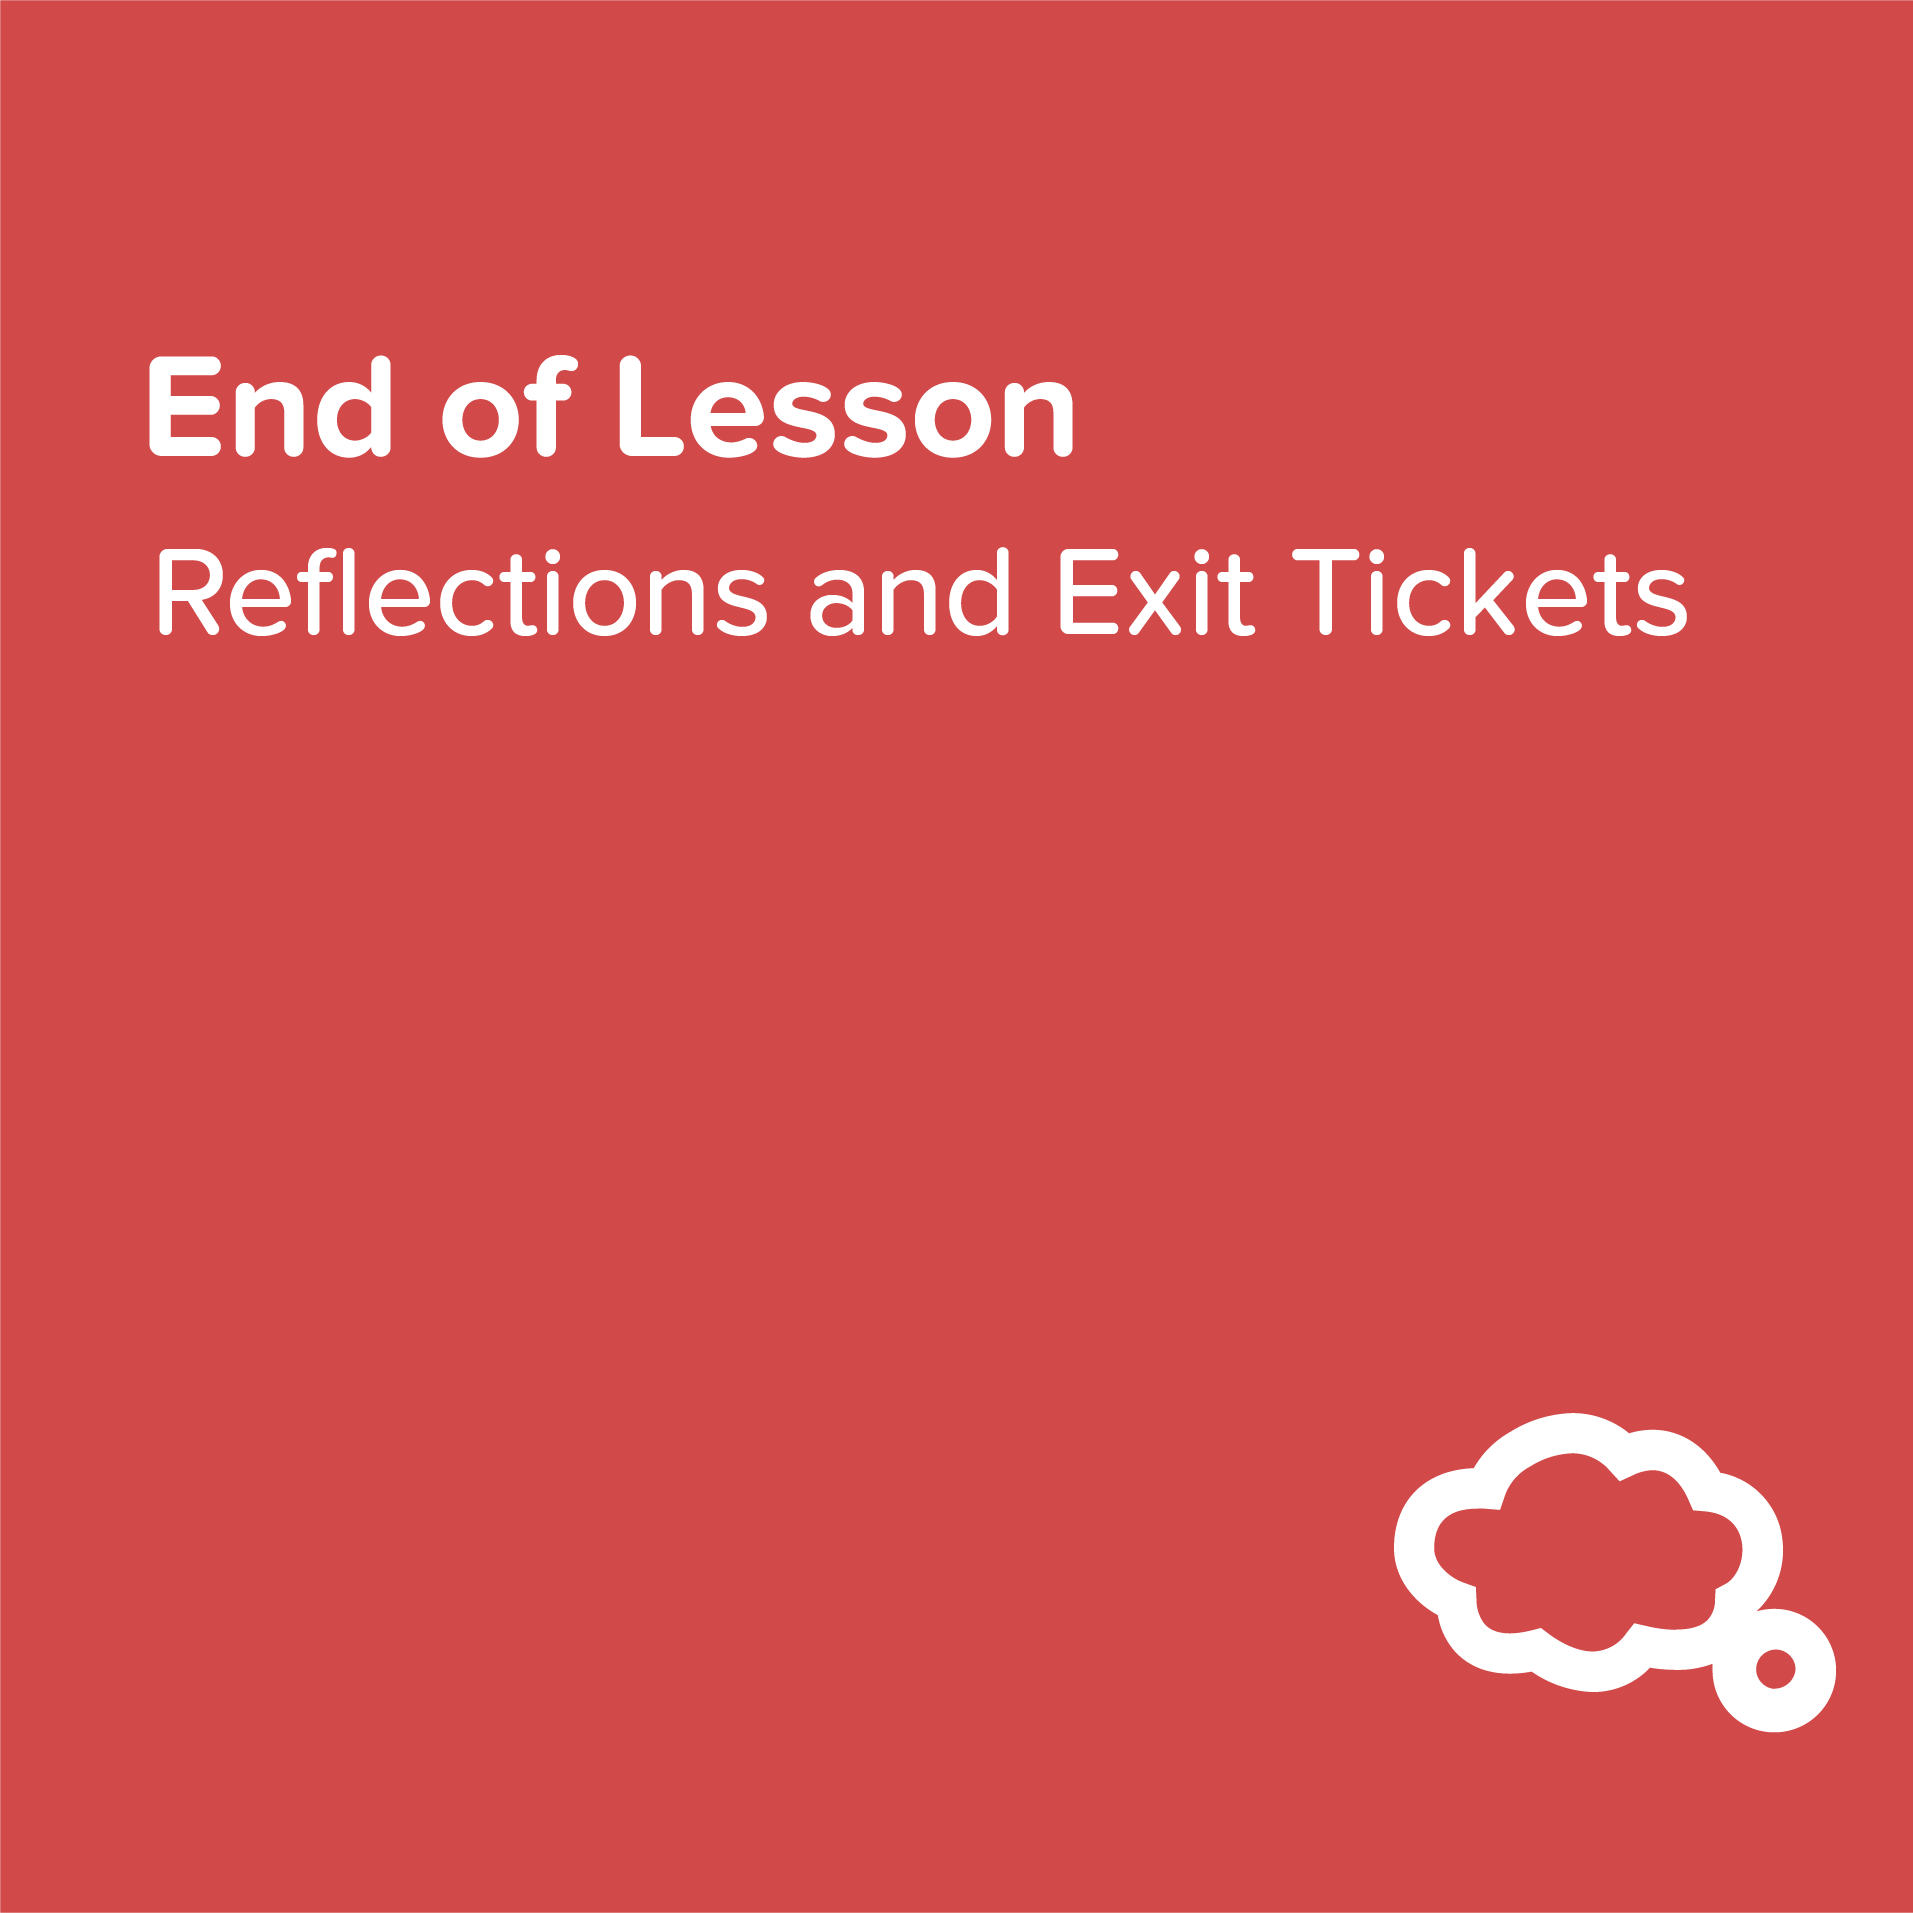 End of Lesson   Wrap up the lesson and help students synthesize learning with exit tickets and prompts for reflection.    View & Download >